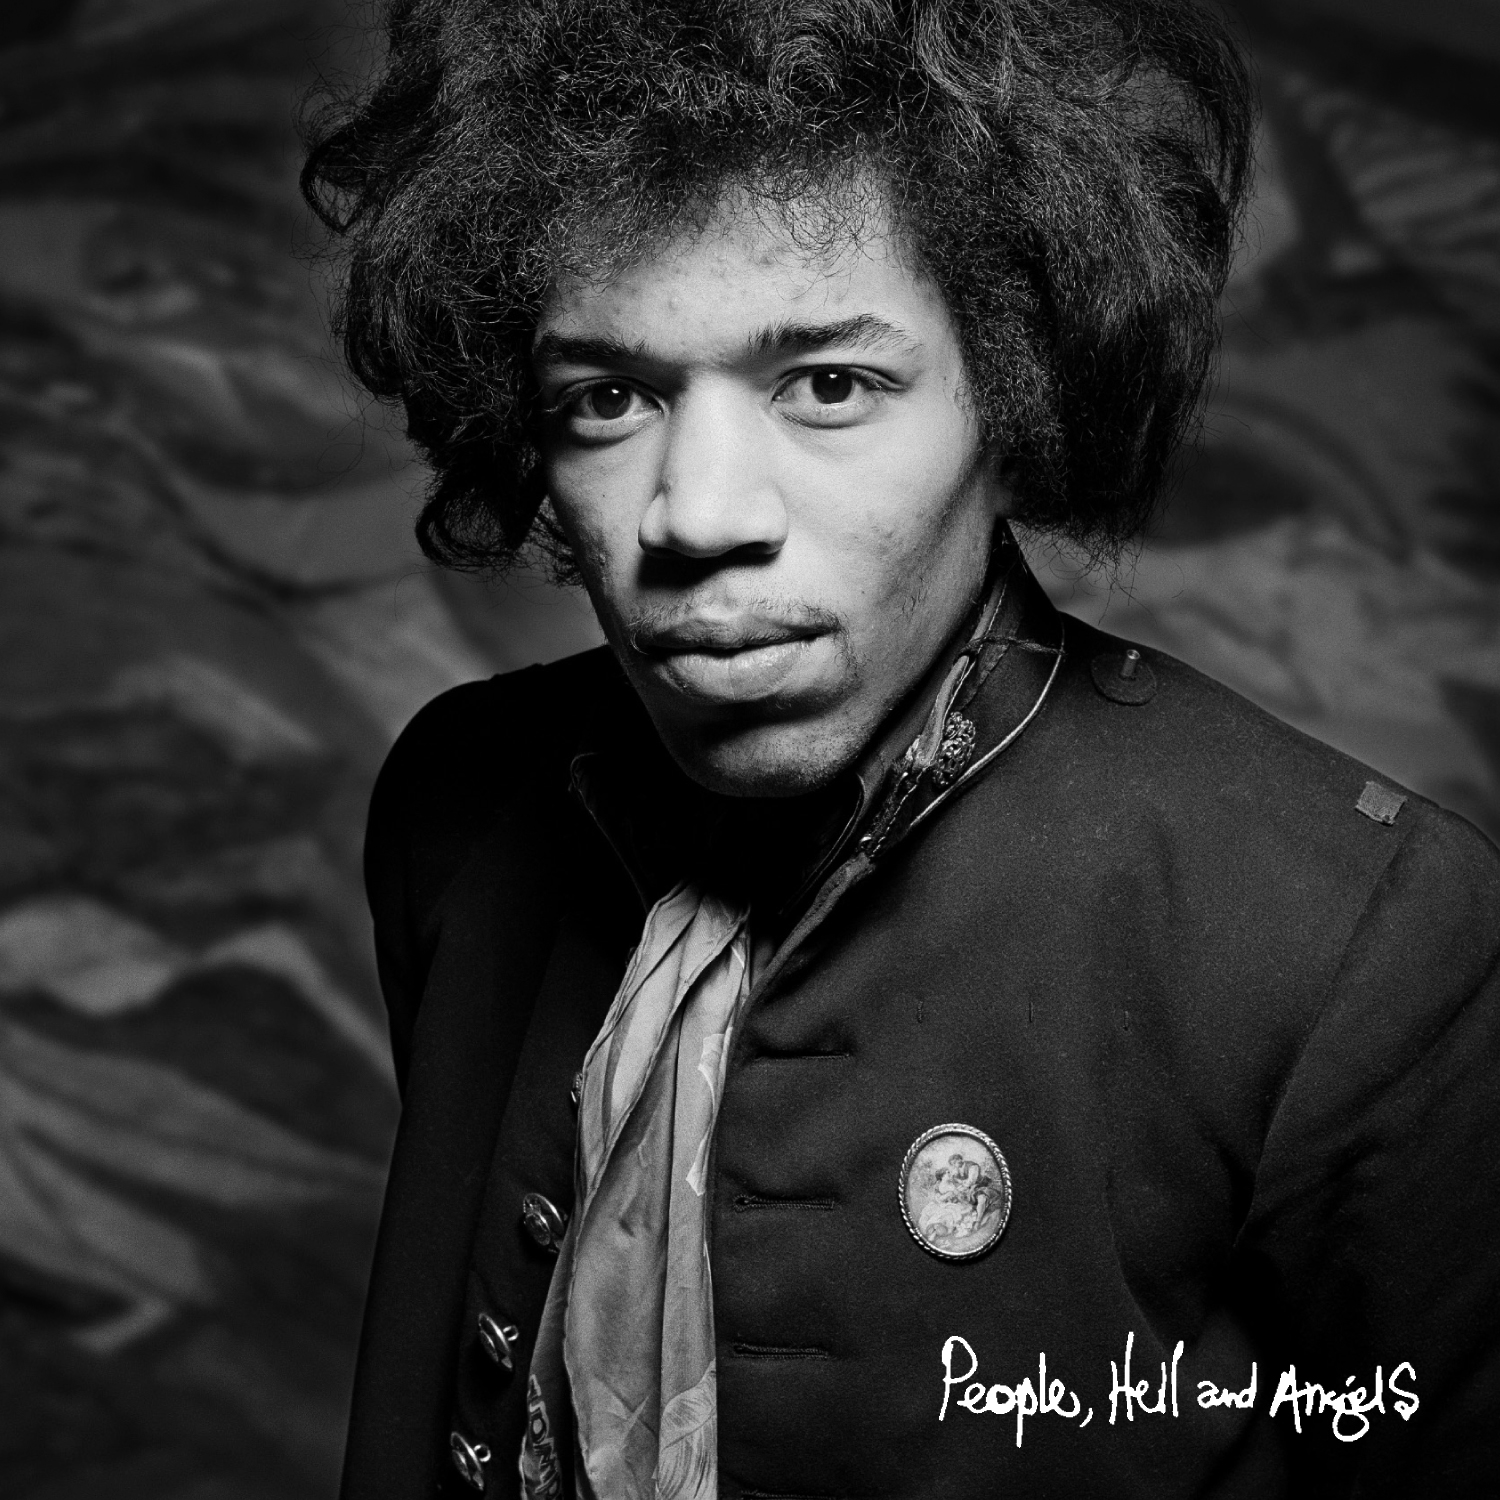 Jimi Hendrix's People, Hell & Angels coming March 8, 2013